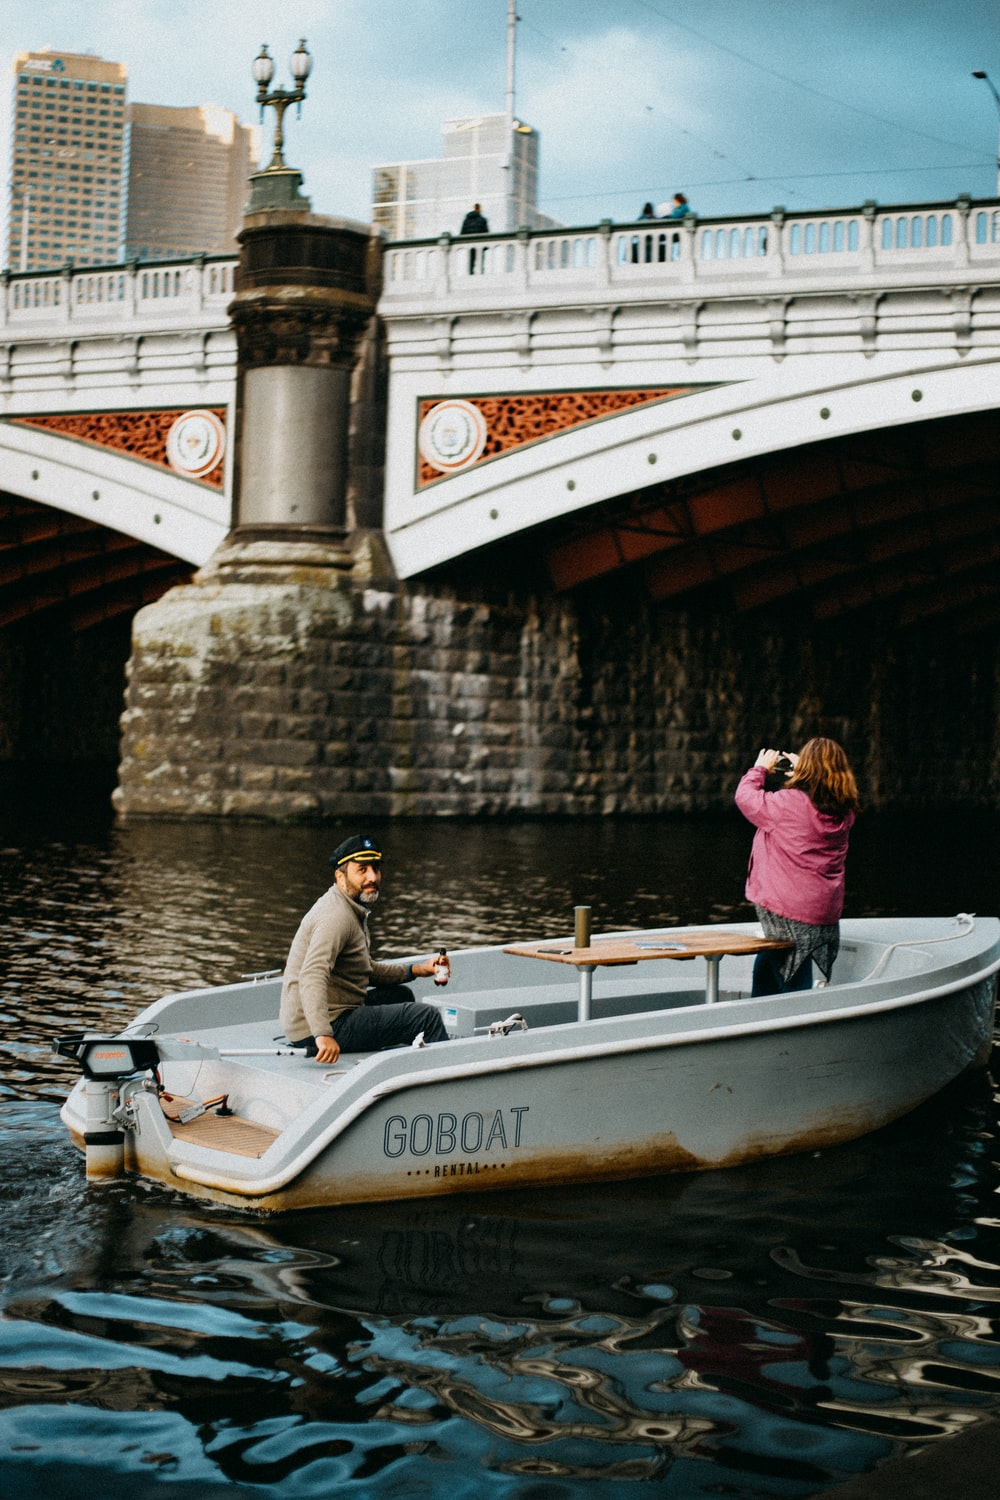 man and woman on white and blue boat on river during daytime